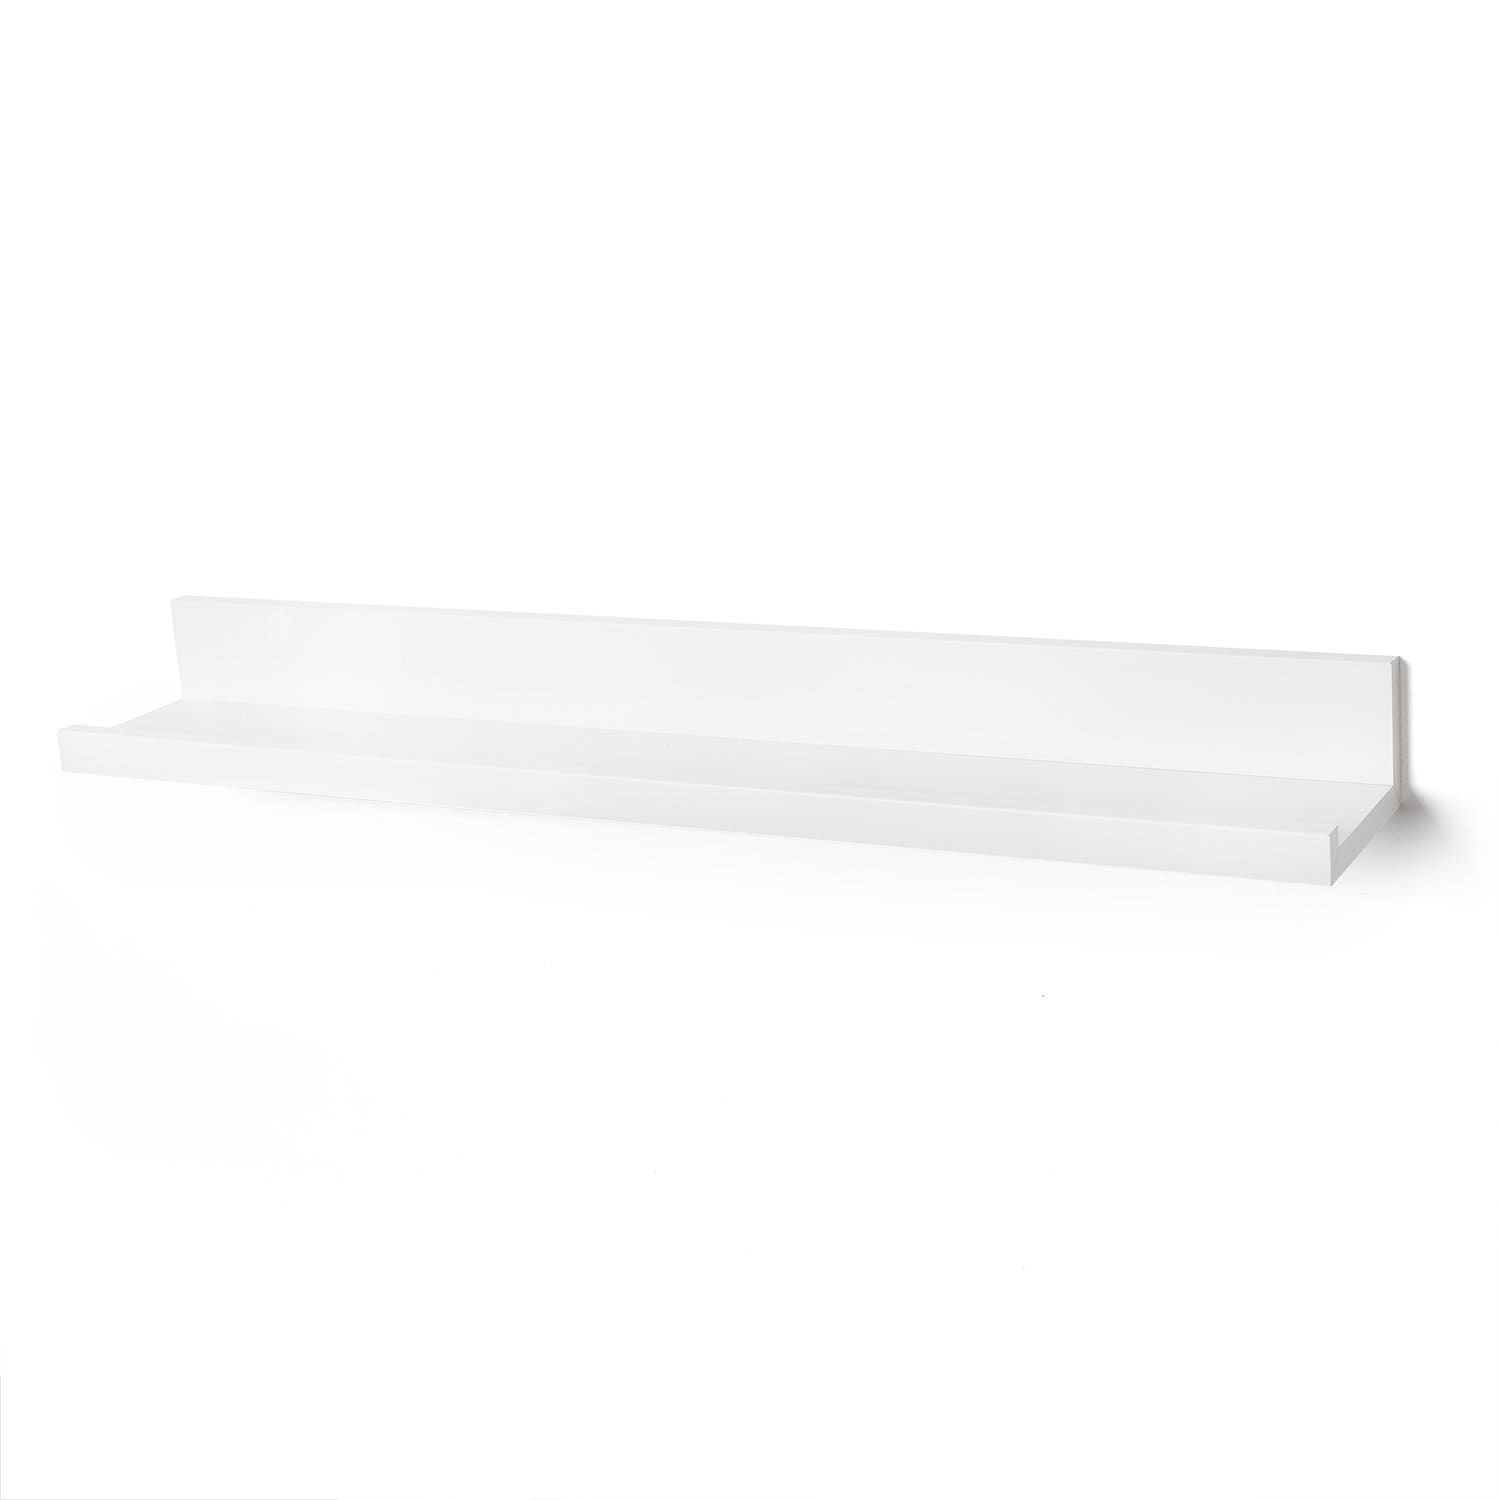 Americanflat Set of 3-14 Inch Floating Wall Shelves White